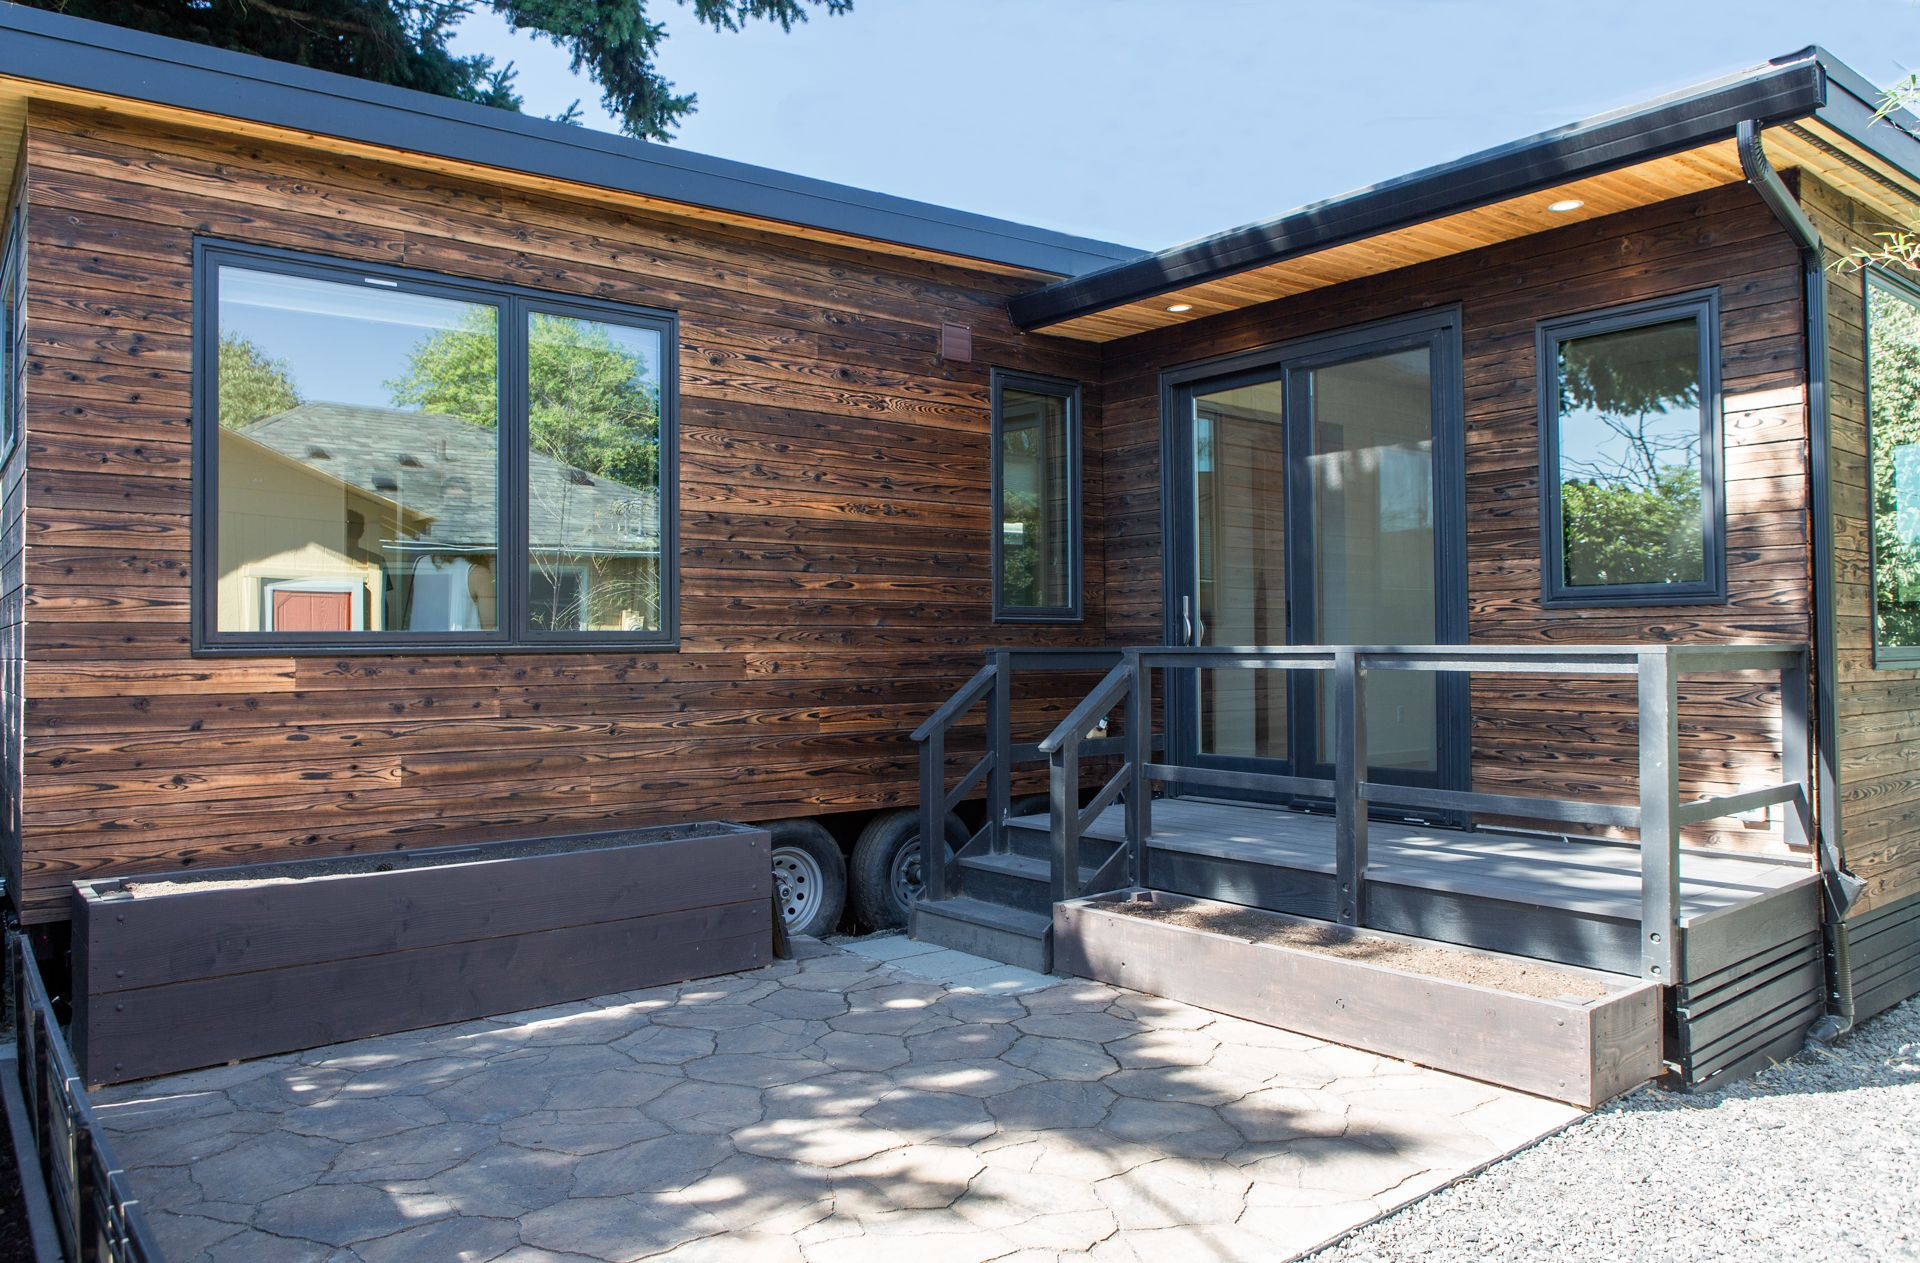 A Residence Tiny Home Adu Portland Or Gendai In 2020 Tiny